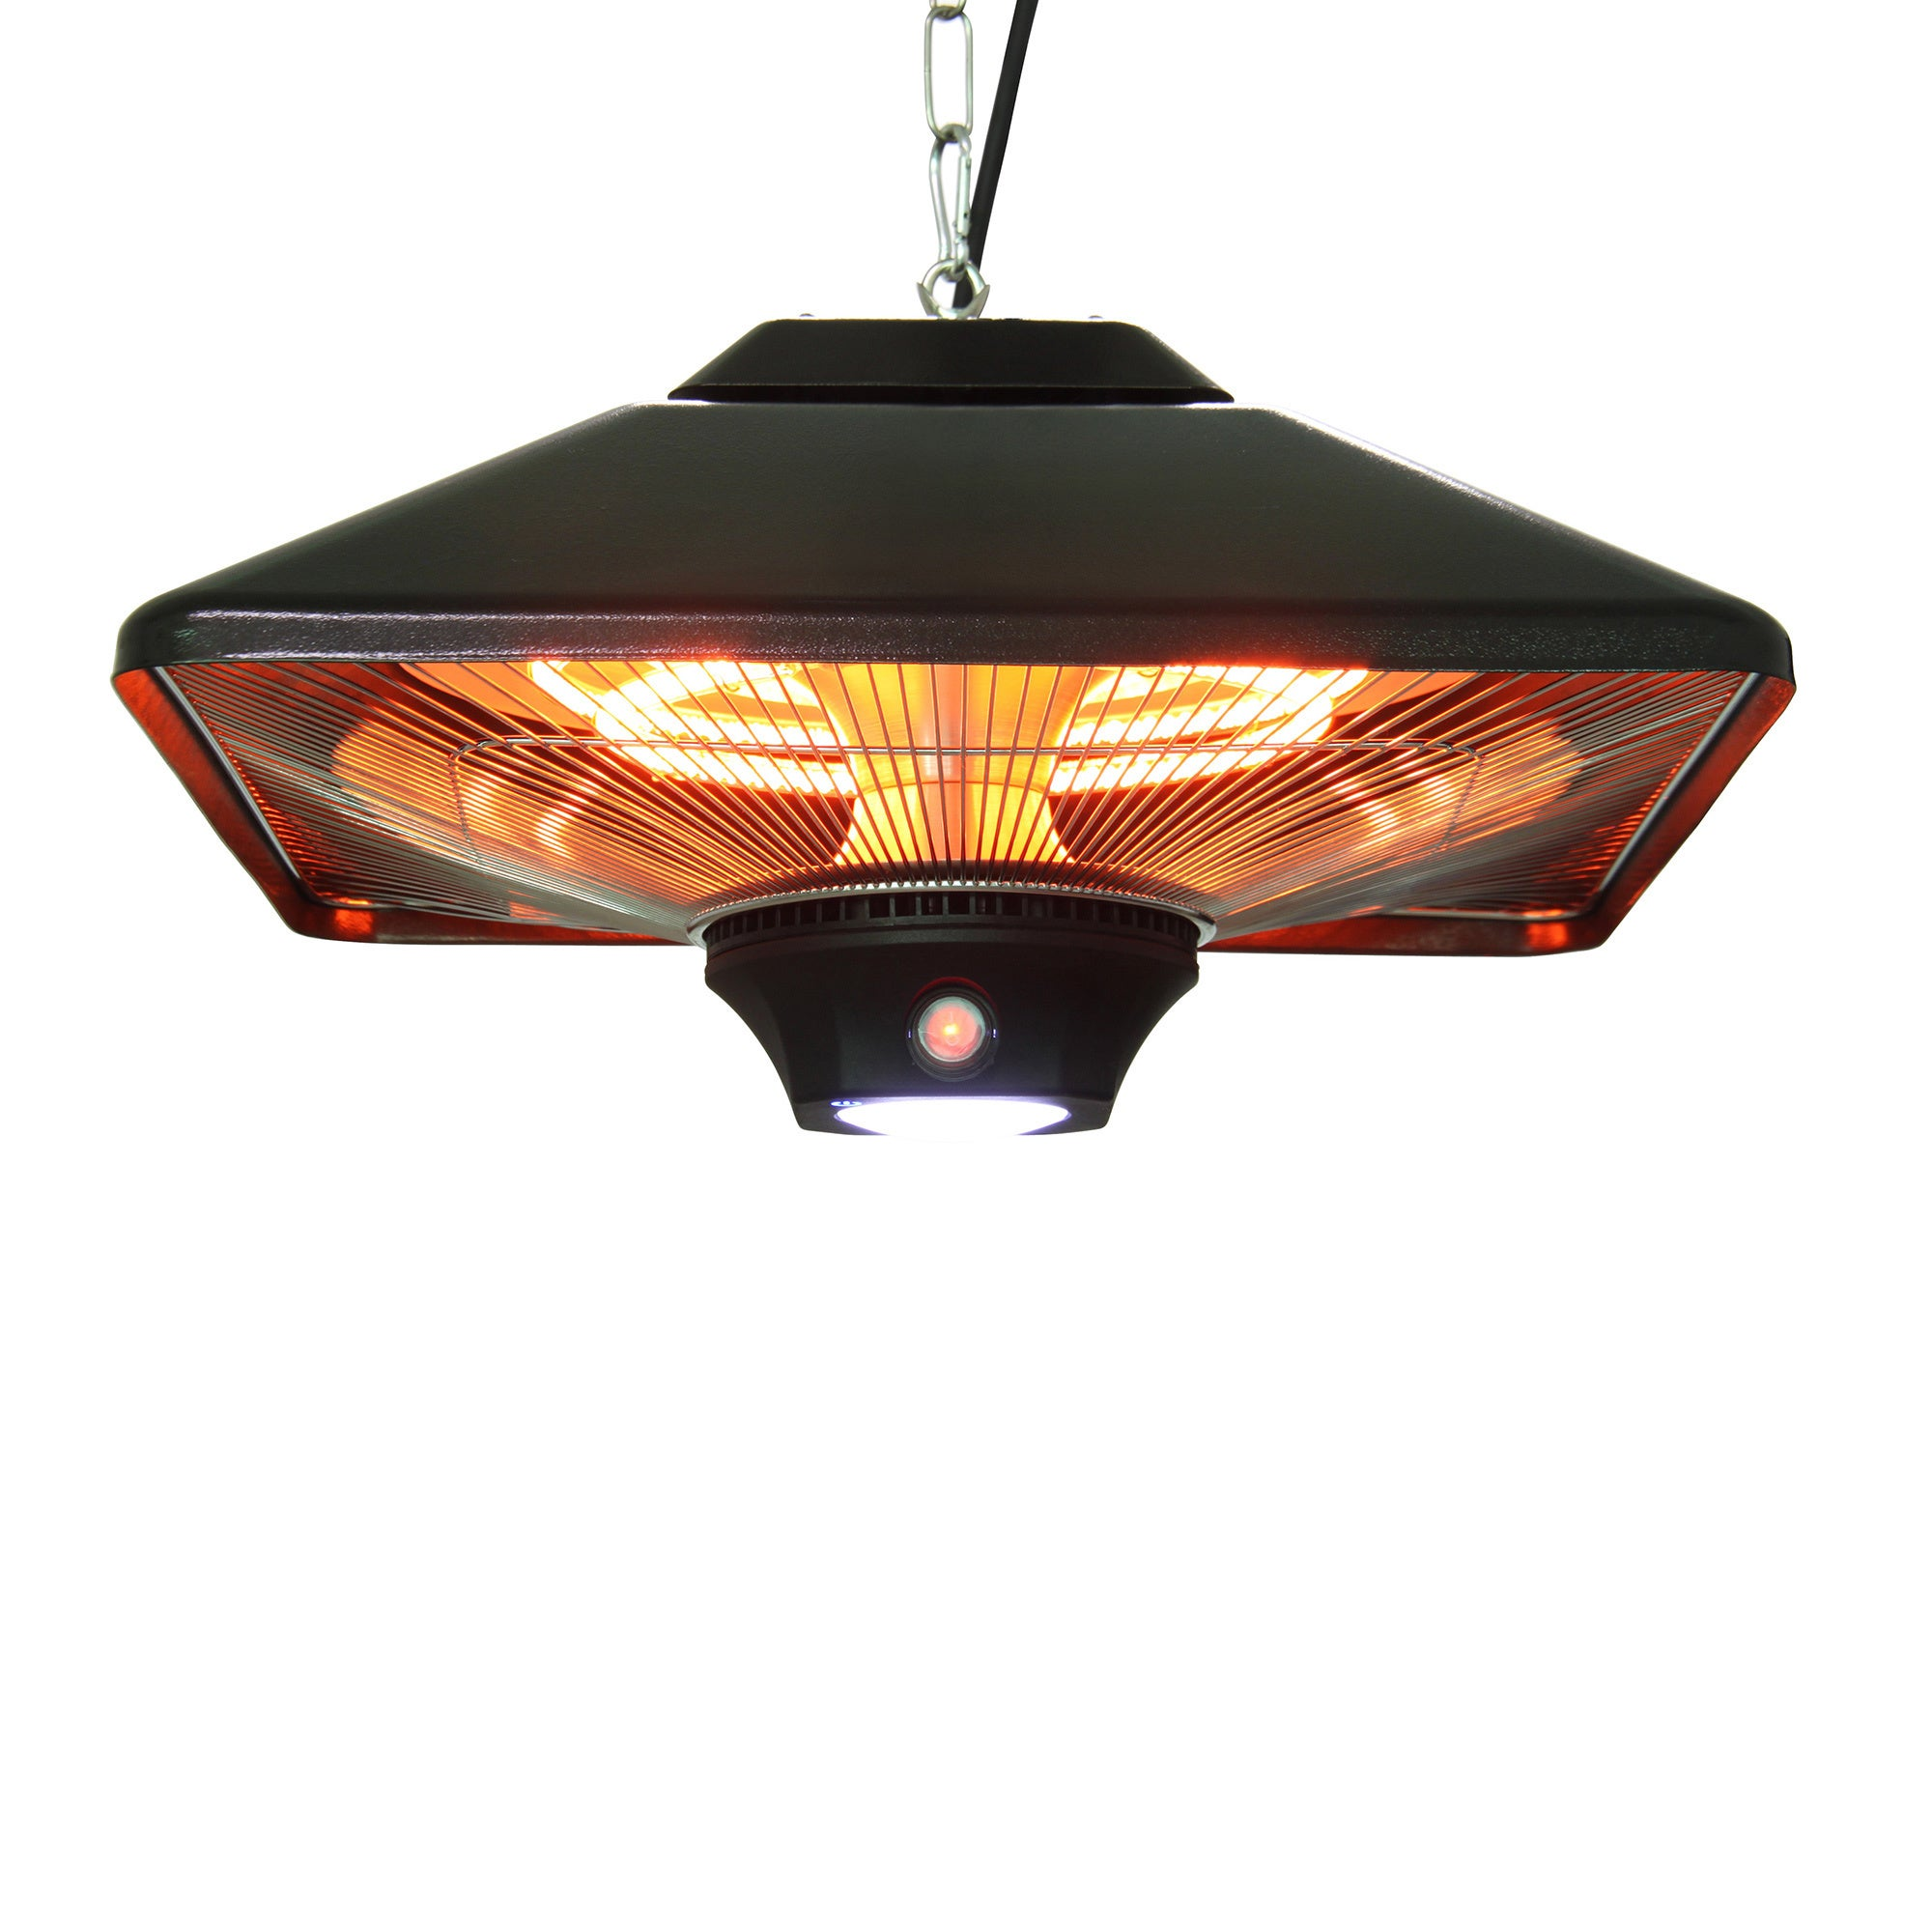 EnerG HEA 2188LEd B Hanging Electric Infrared Outdoor Heater